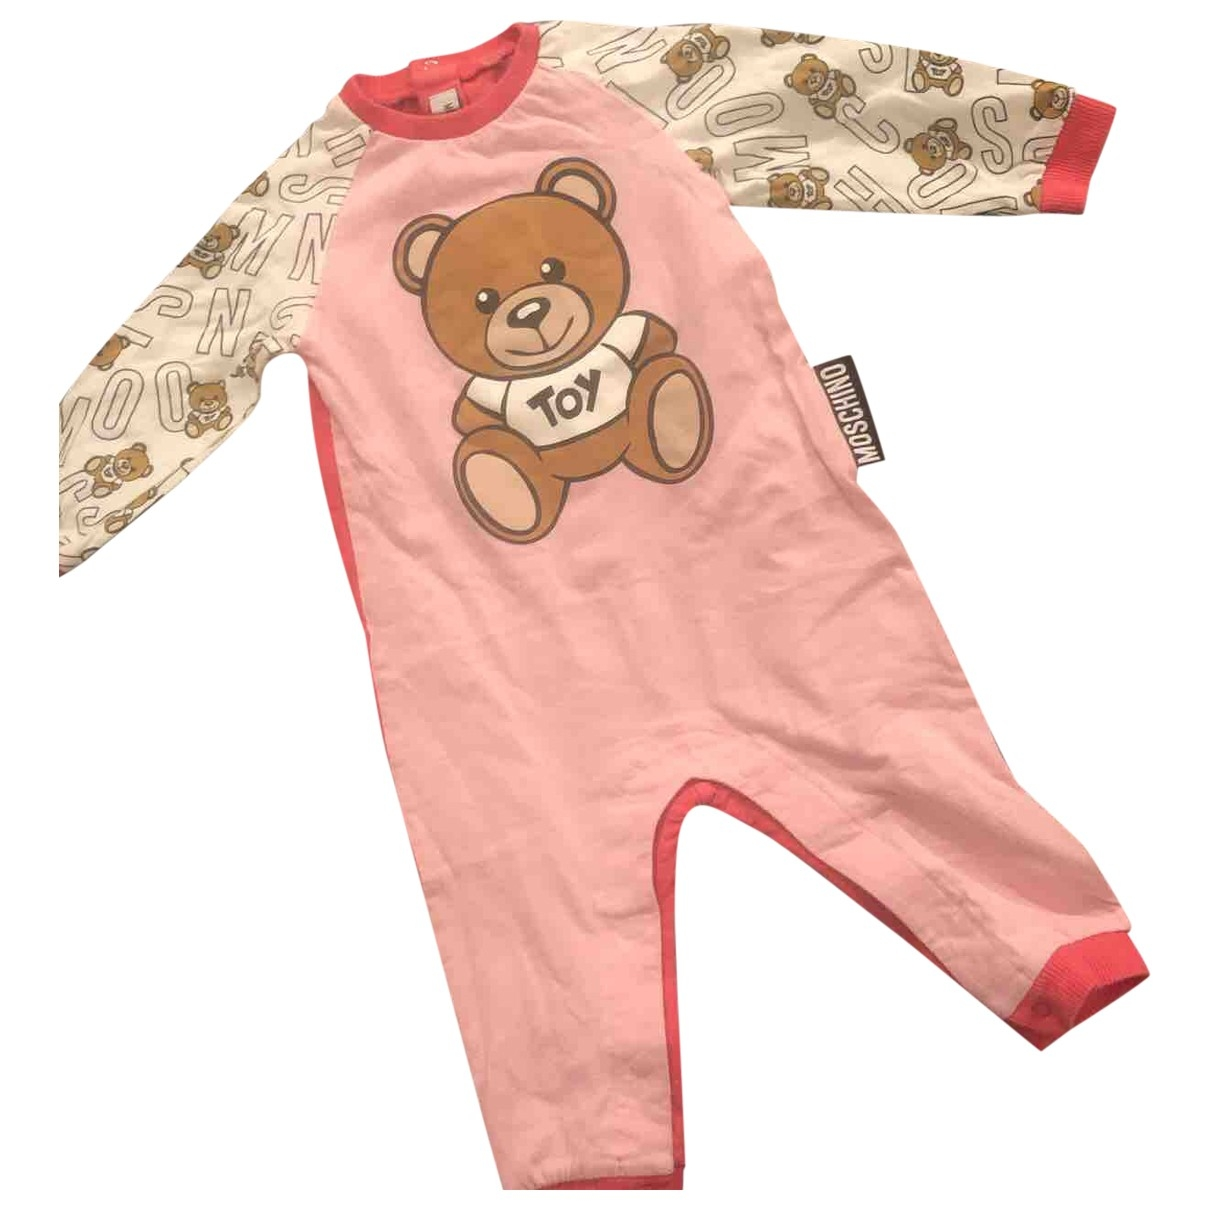 Moschino \N Pink Cotton Outfits for Kids 9 months - until 28 inches UK